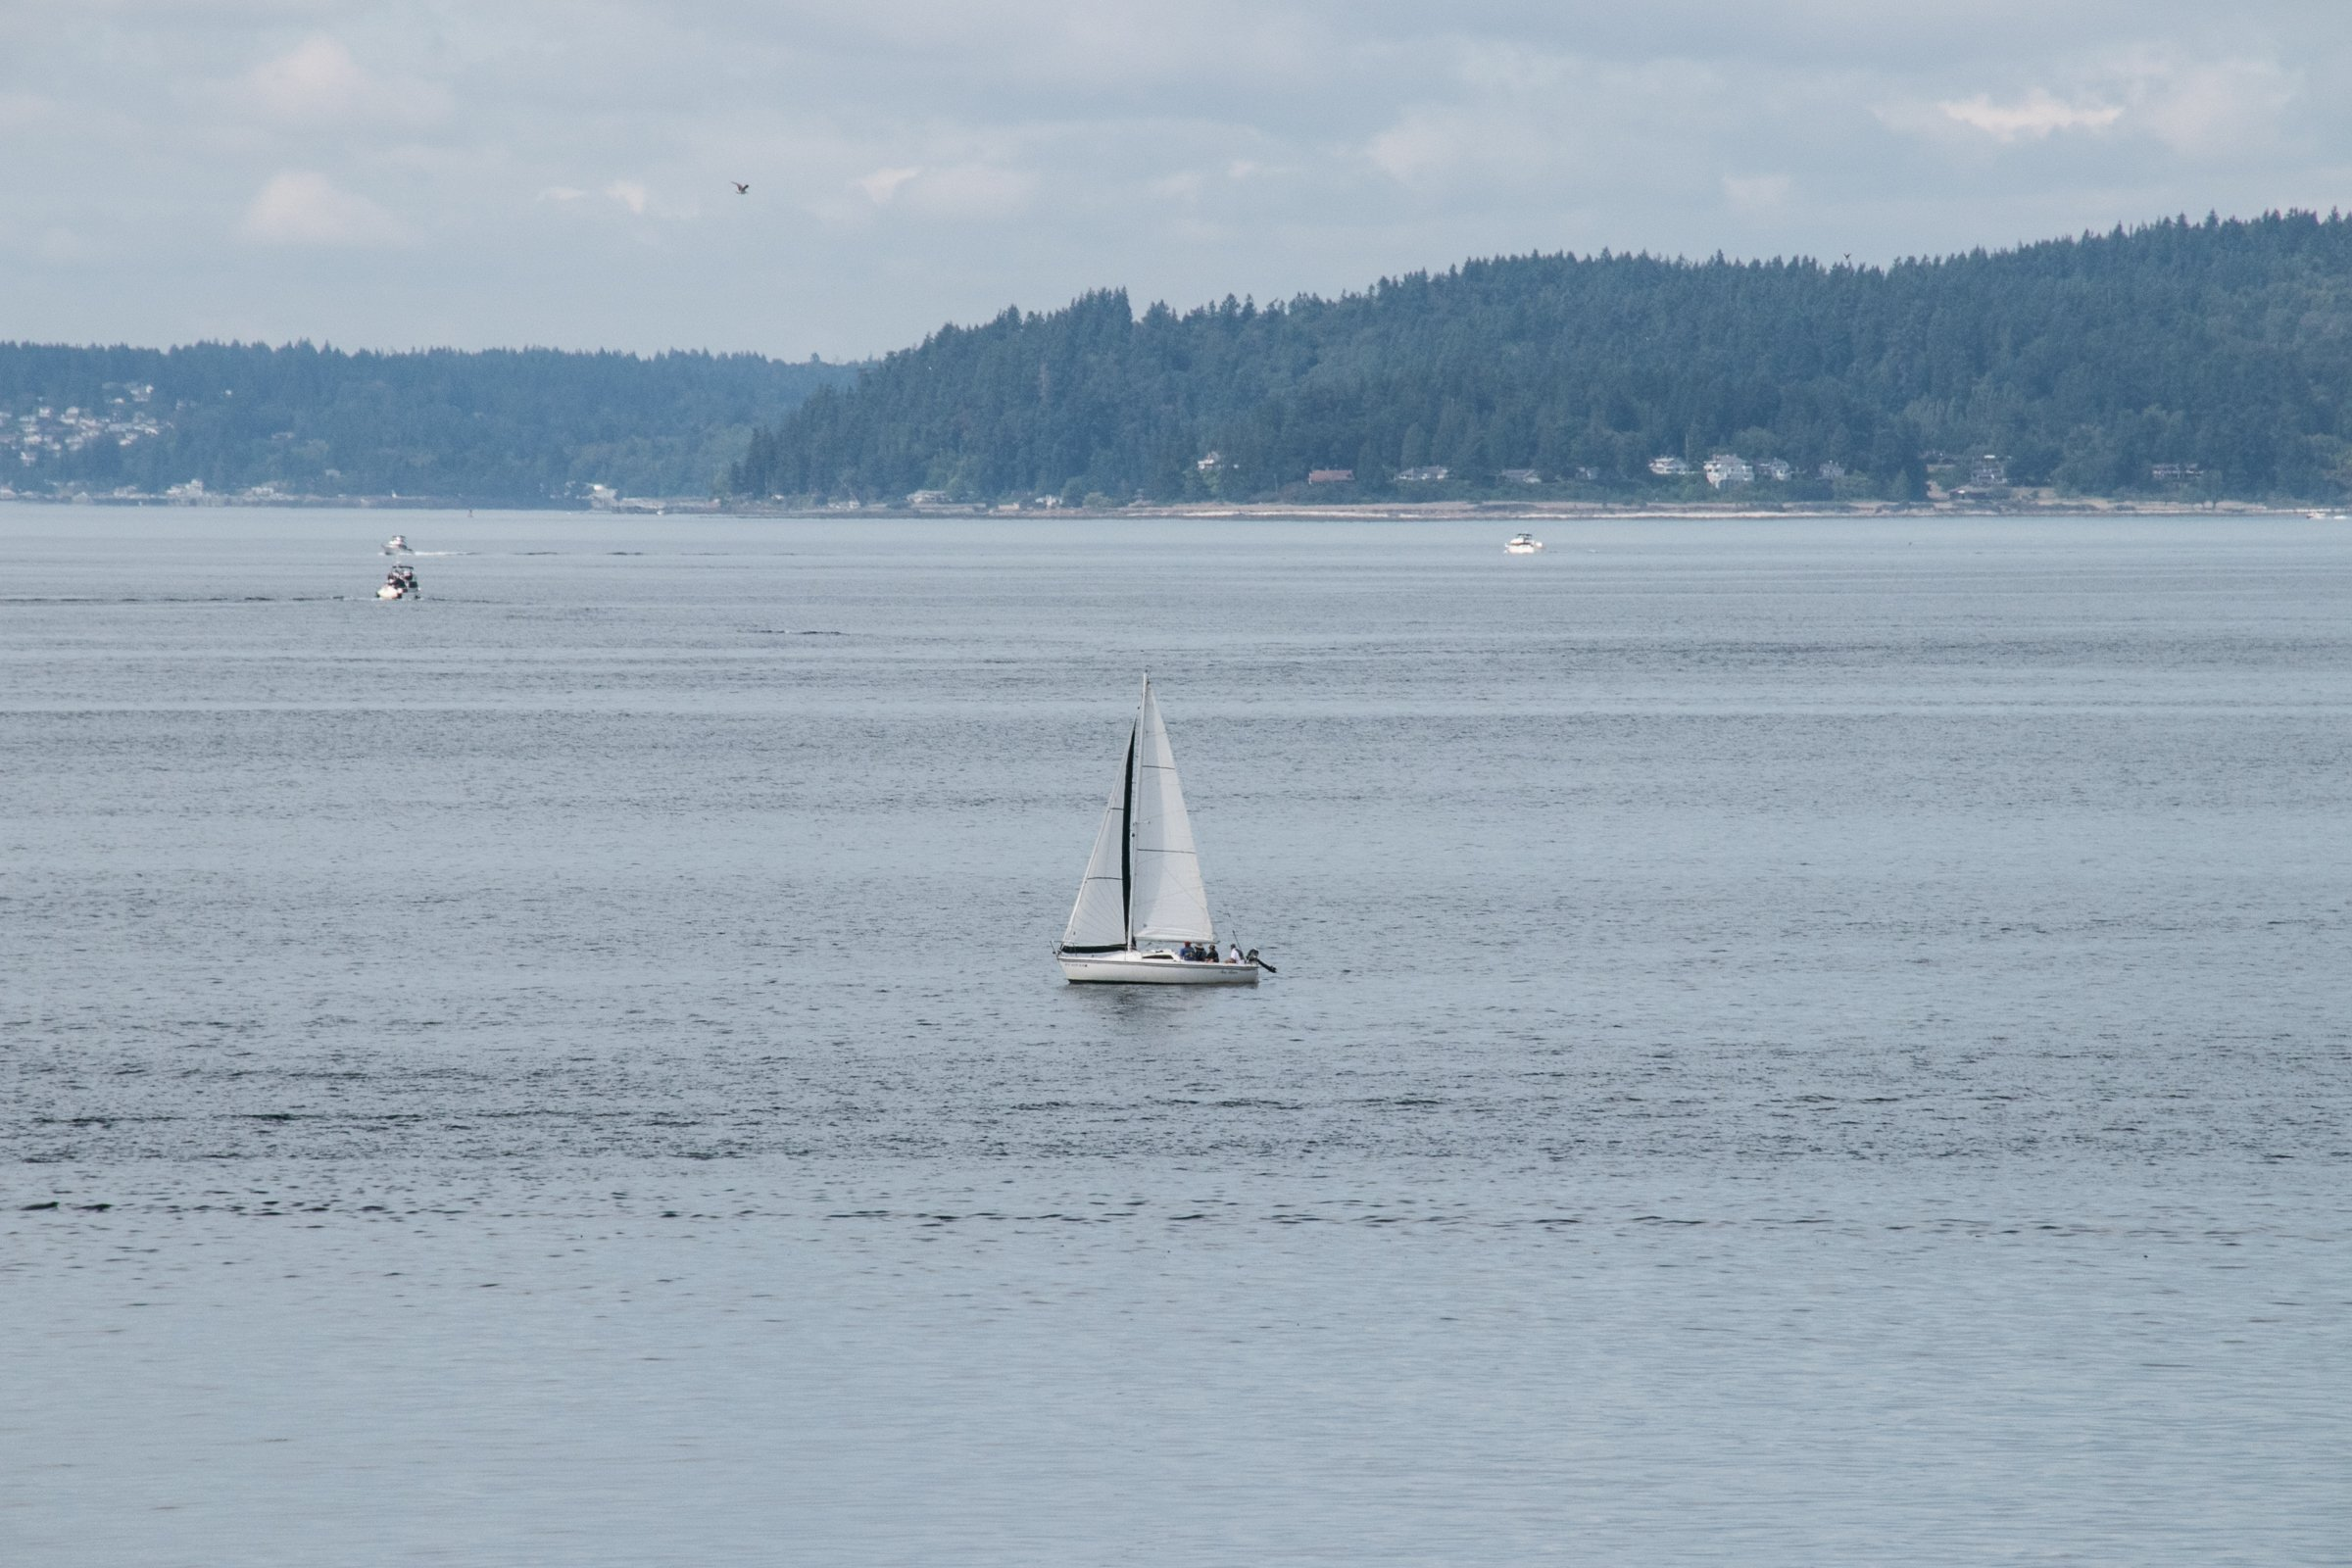 Sailboat On Water Near Coast